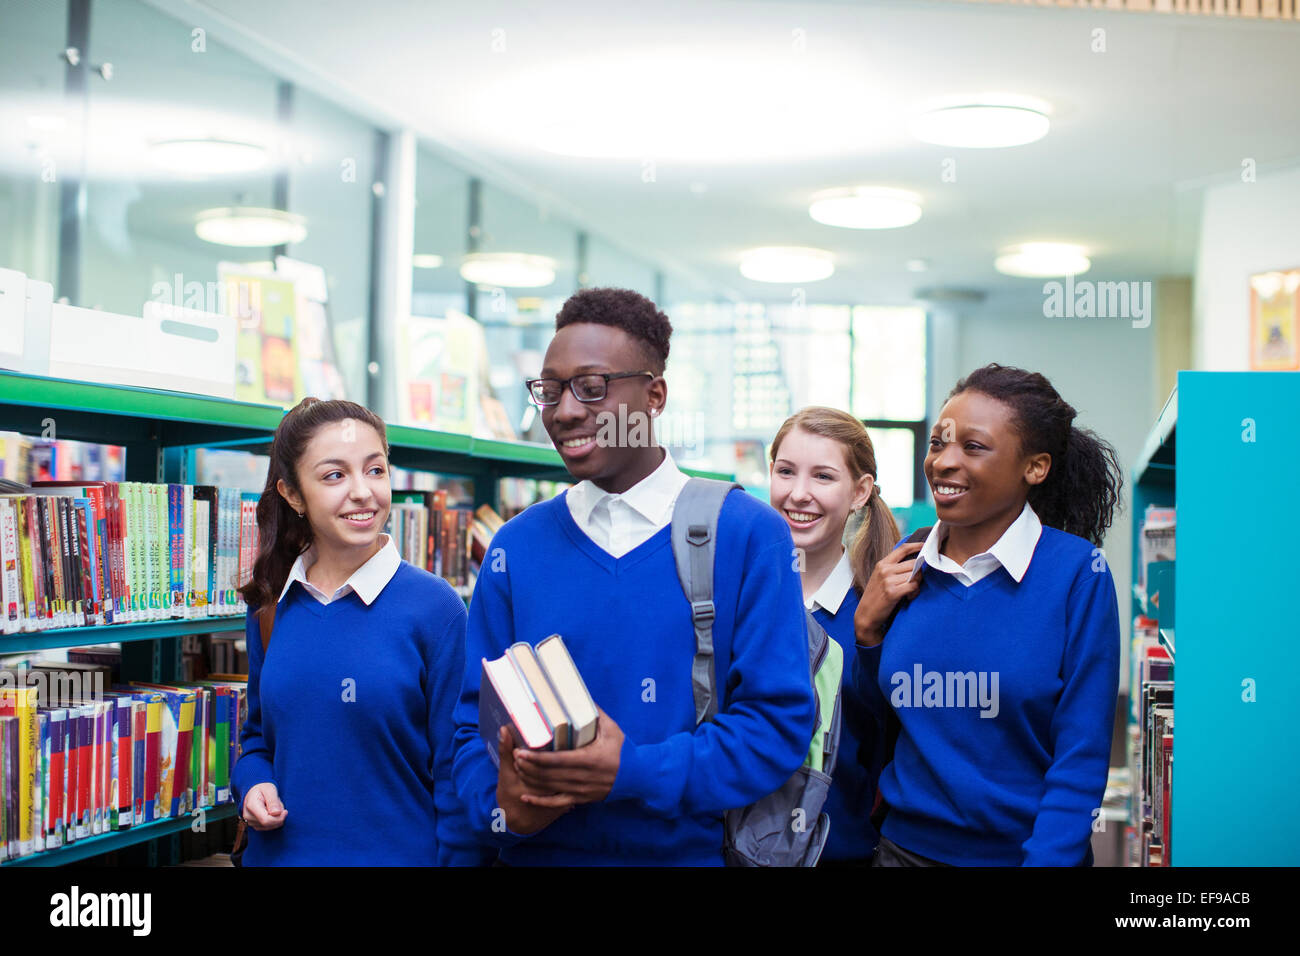 Cheerful students wearing blue school uniforms walking through library - Stock Image